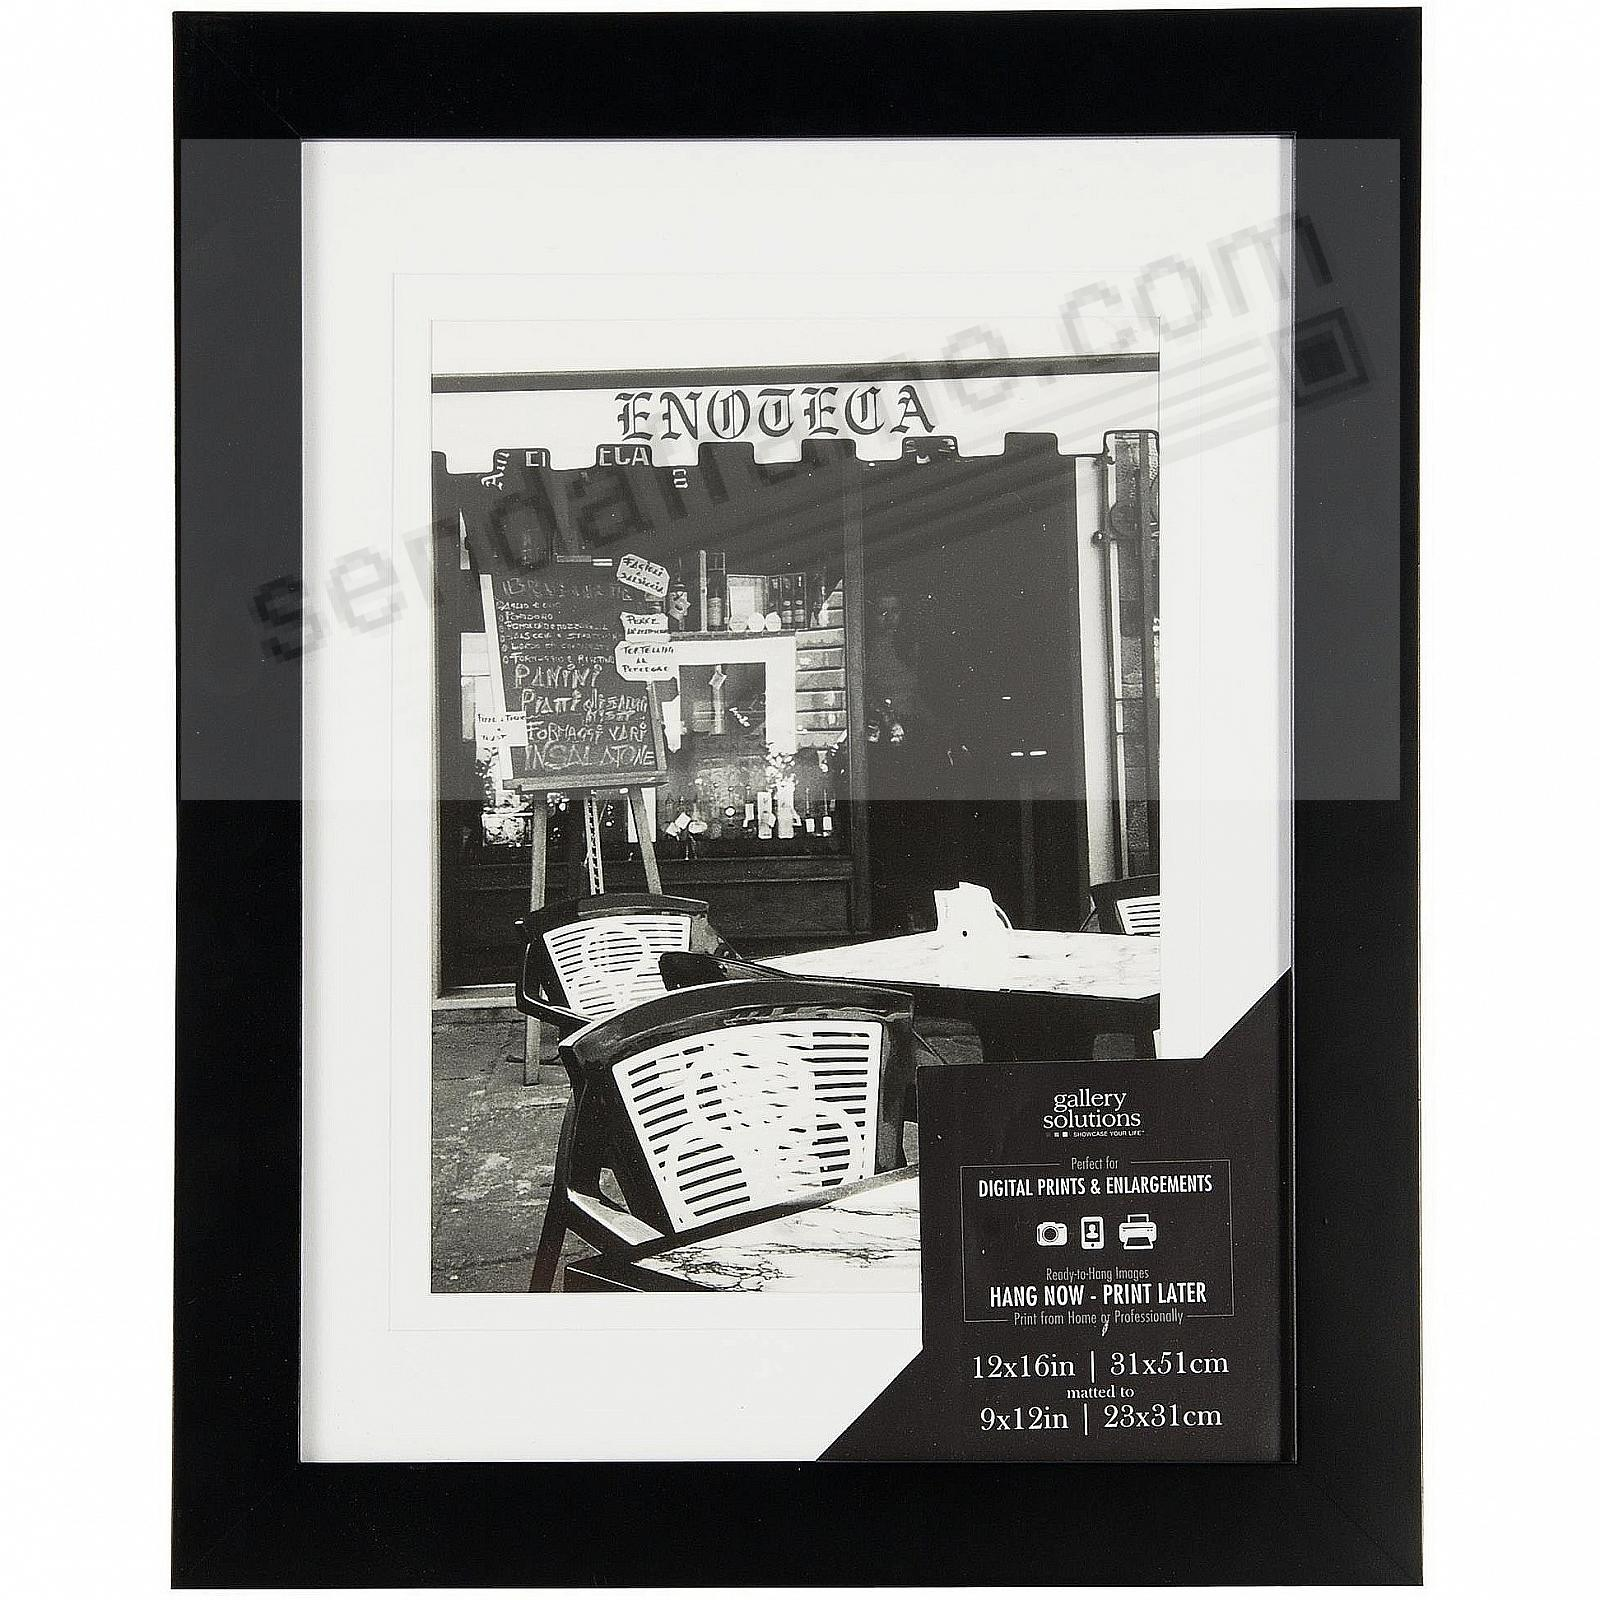 Black Wood Wall Frame Matted 12X169X12 By Gallery Solutionstrade